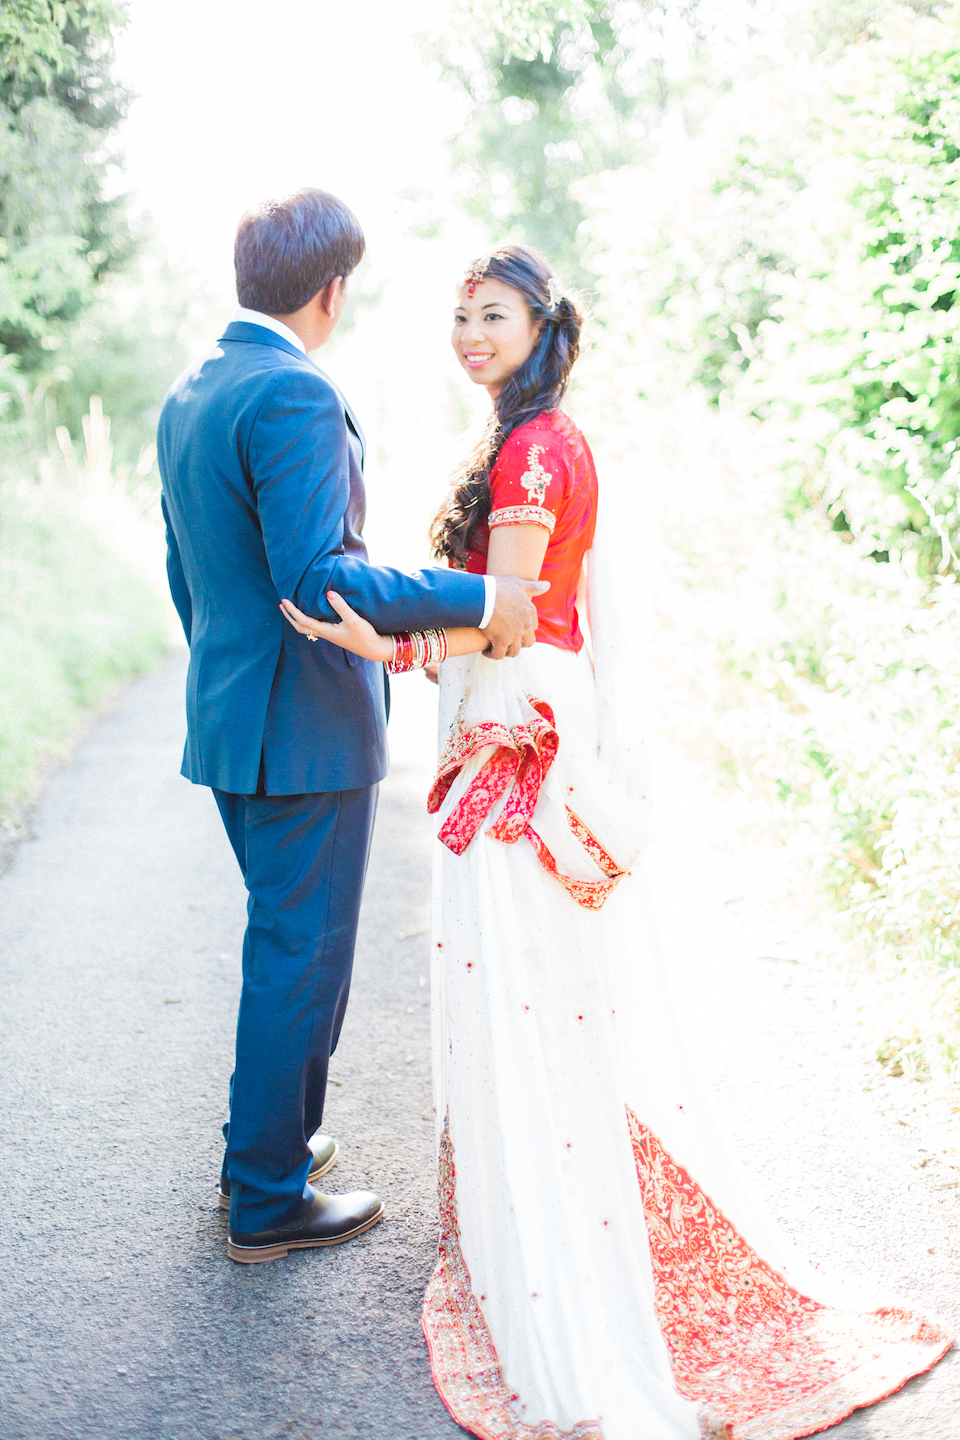 Xander-and-Thea--Staffordshire-wedding-photography--West-Midlands-Fine-art-photography-1161